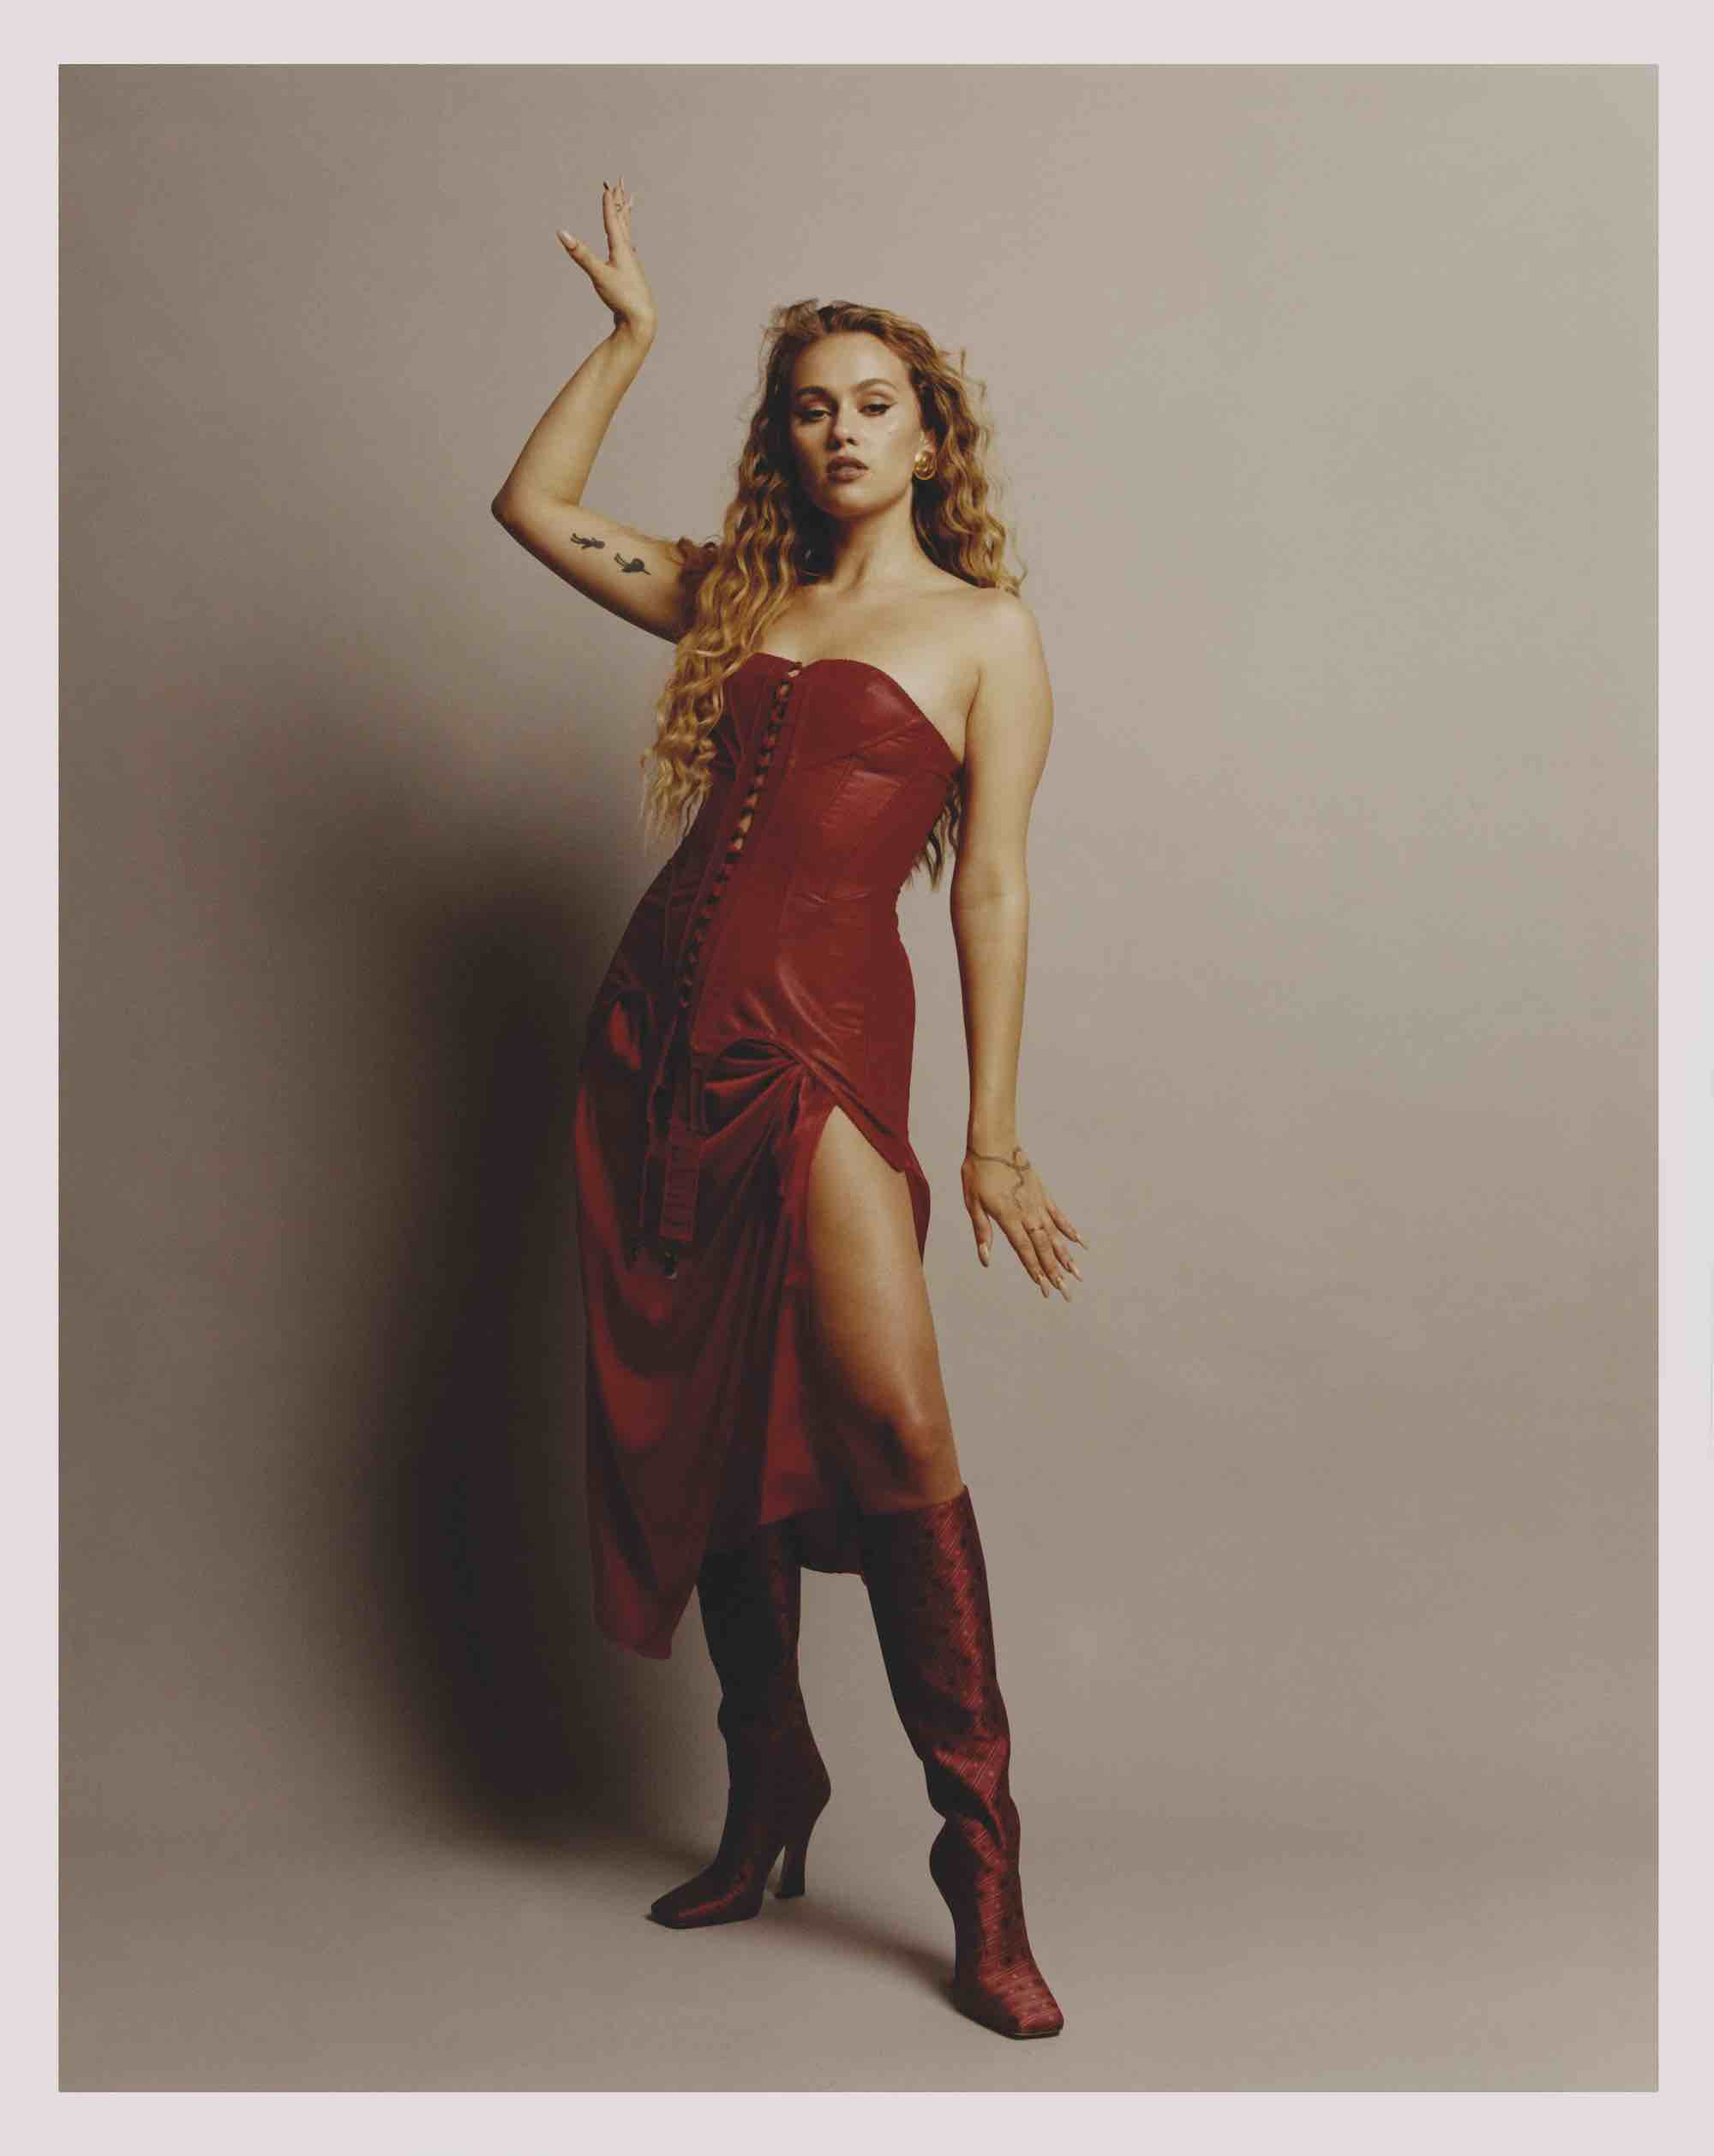 Sasha Keable in the Winter issue red dress